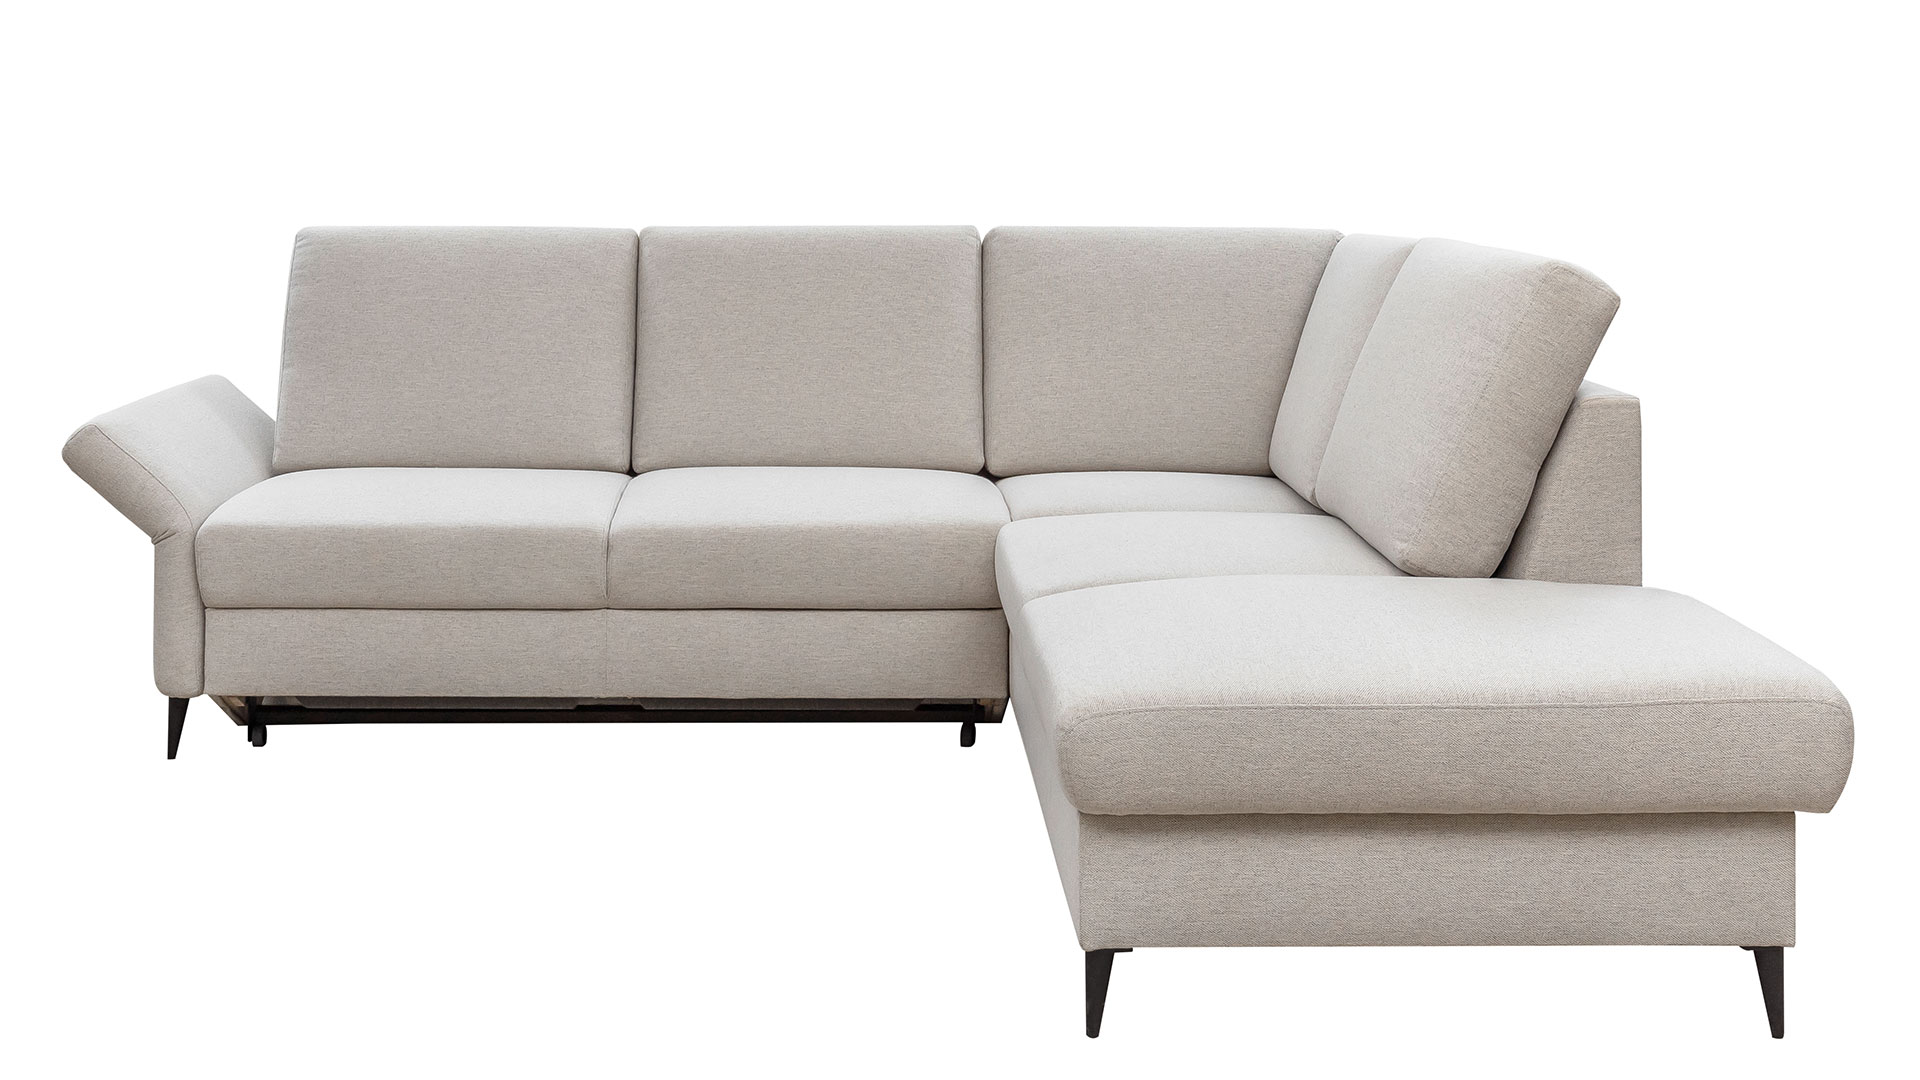 Corner sofa with sleeping function Orlando